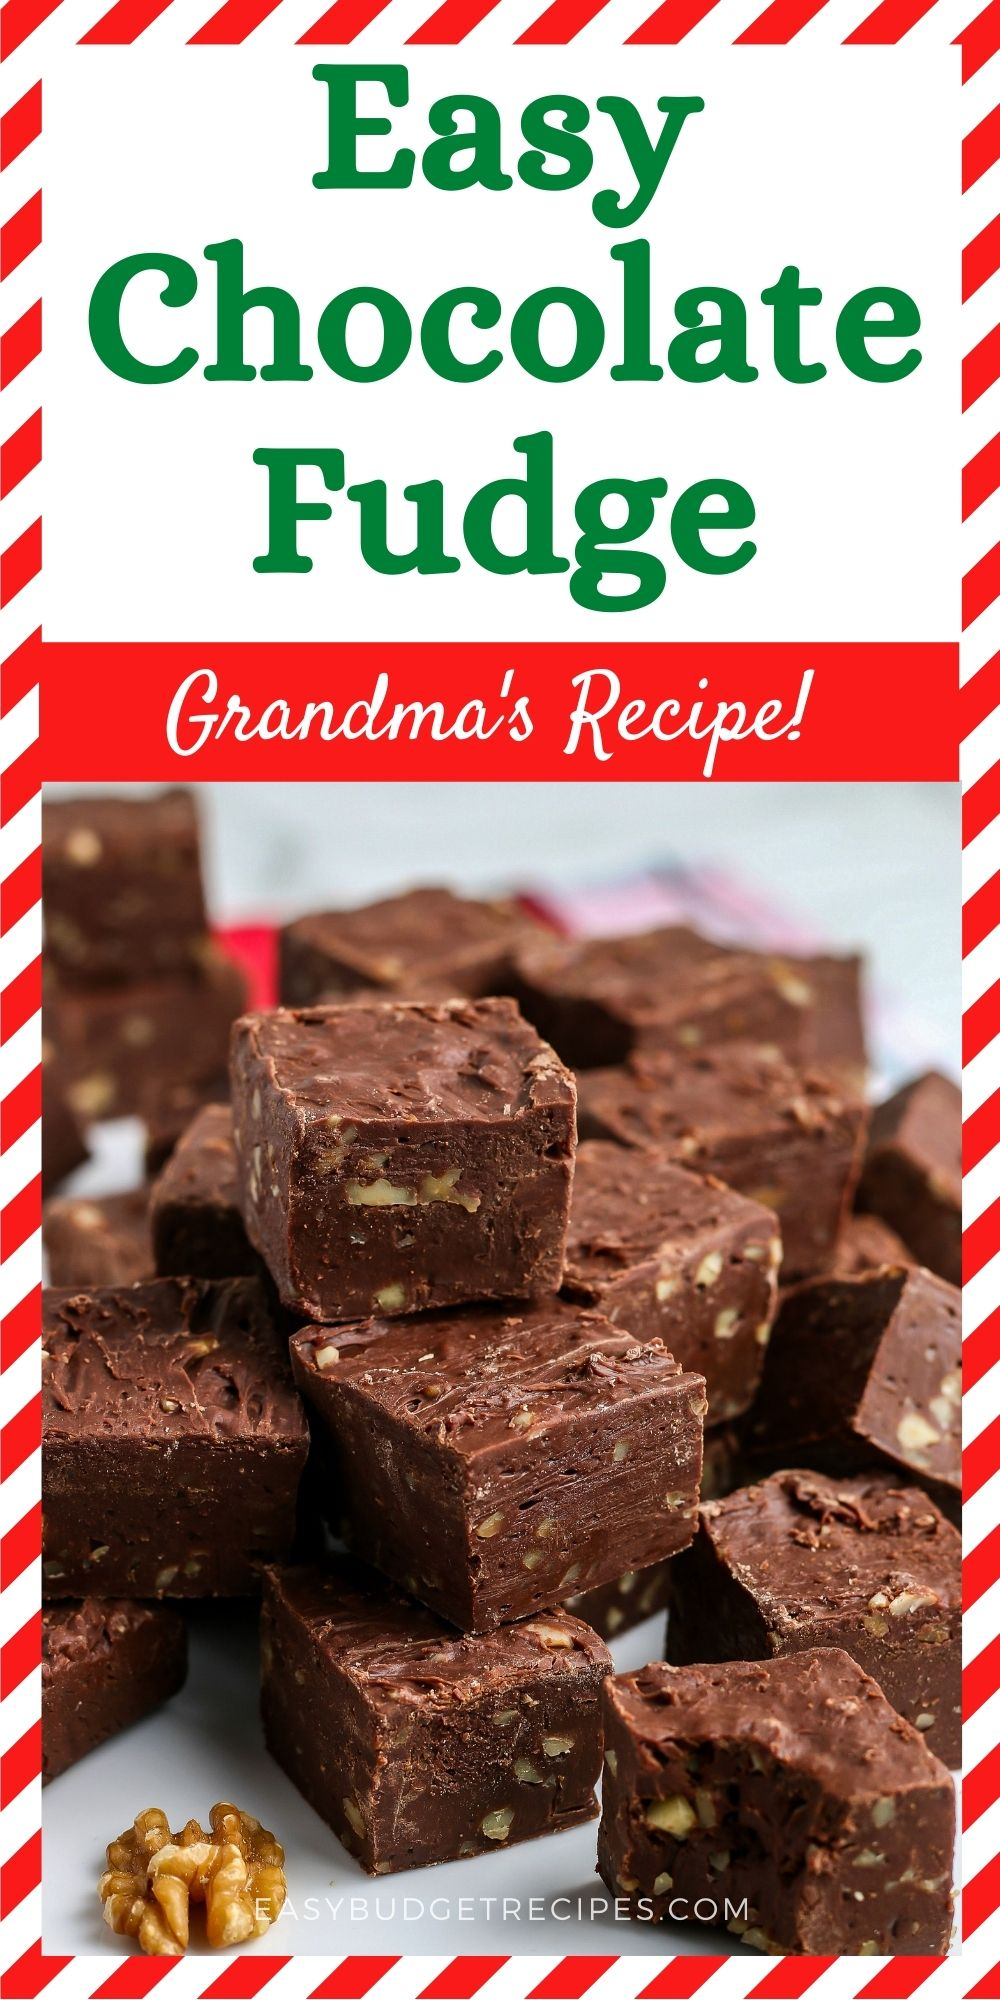 You only need 5 ingredients to make this super Easy Chocolate Fudge recipe. This classic holiday candy is always a favorite! via @easybudgetrecipes